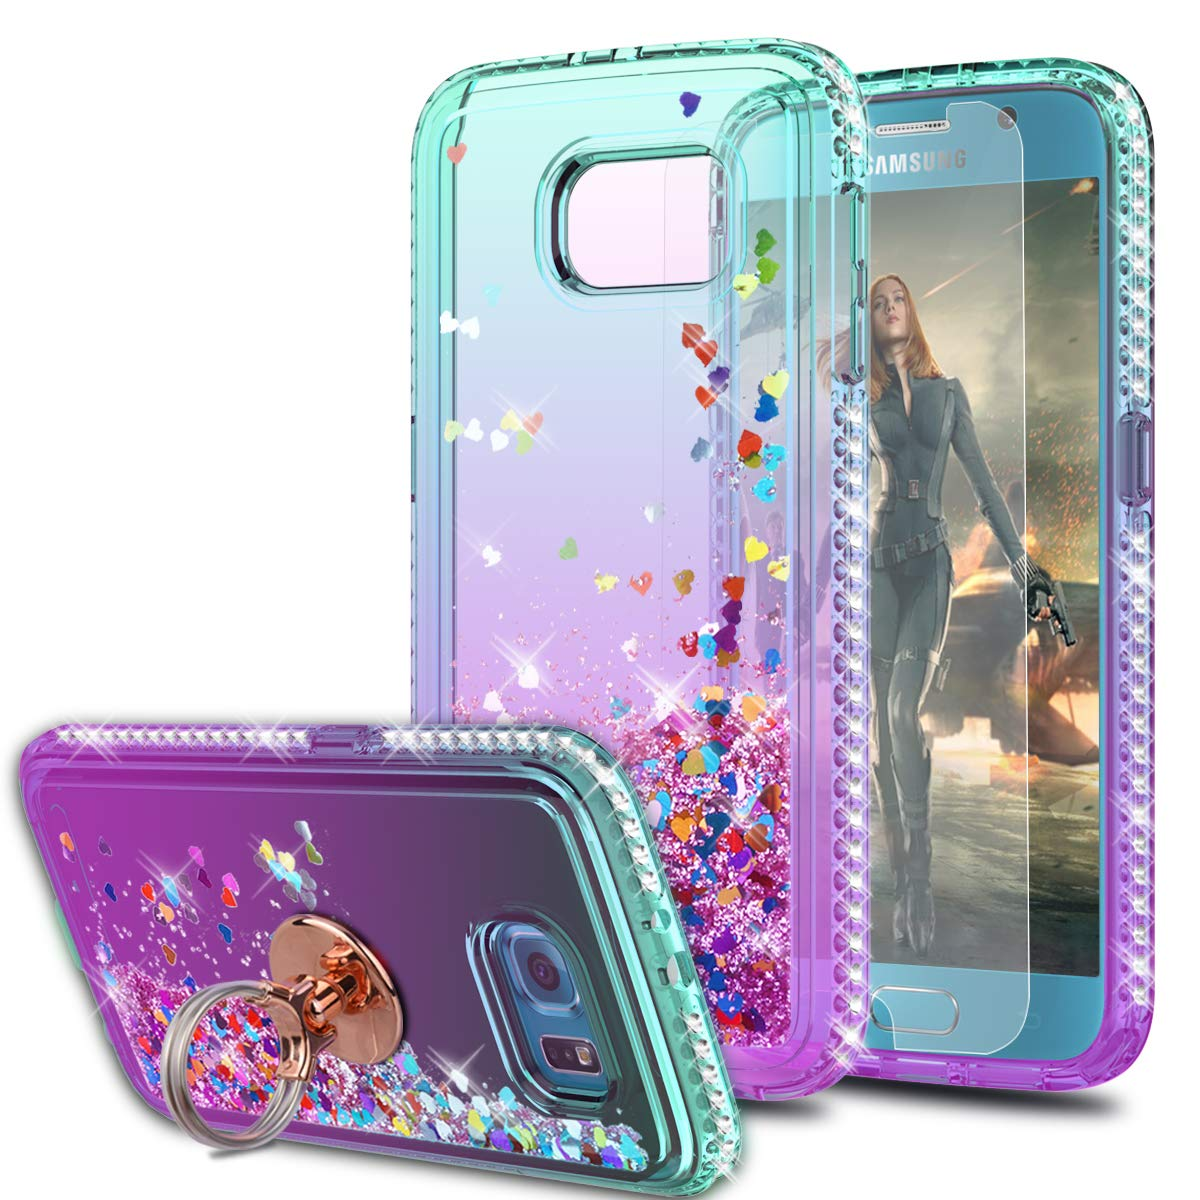 Galaxy S6 Case,Galaxy S6 9200 Case with HD Screen Protector with Ring Holder,KaiMai Glitter Moving Quicksand Clear Cute Shiny Girls Women Phone Case for Galaxy S6-Aqua/Purple Ring by KaiMai